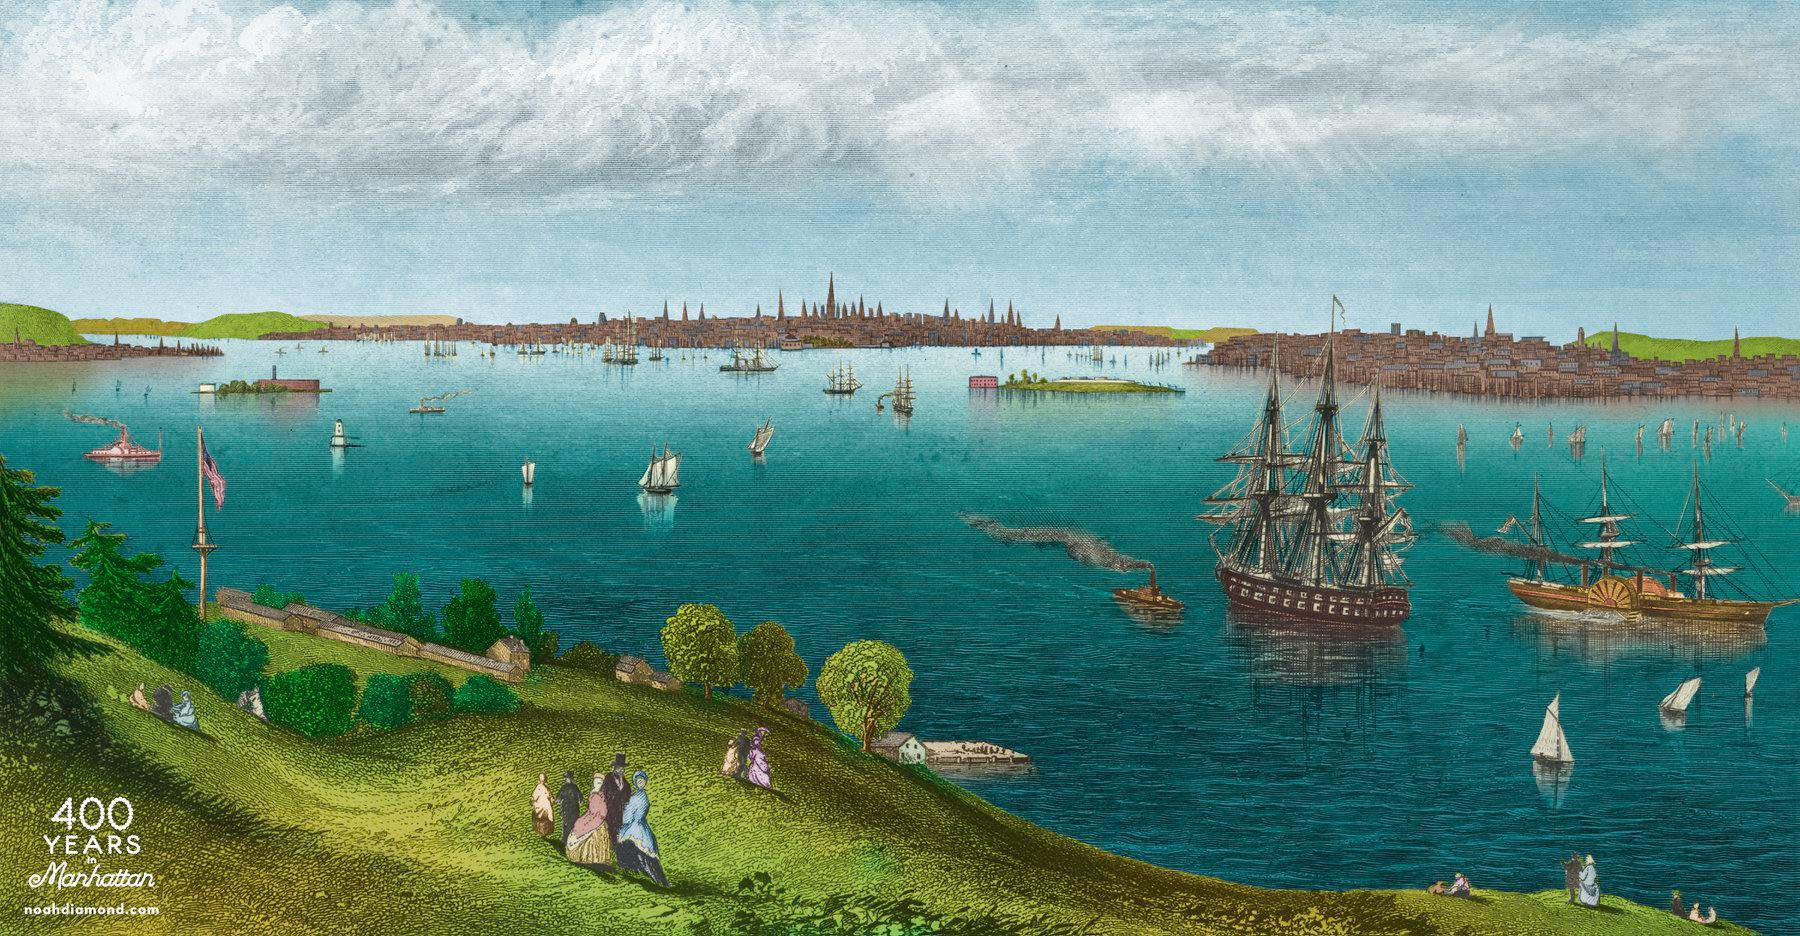 The harbor and Manhattan, seen from Staten Island. Drawing by Joseph Hamilton, 1849. Colored by Noah Diamond, 2018.